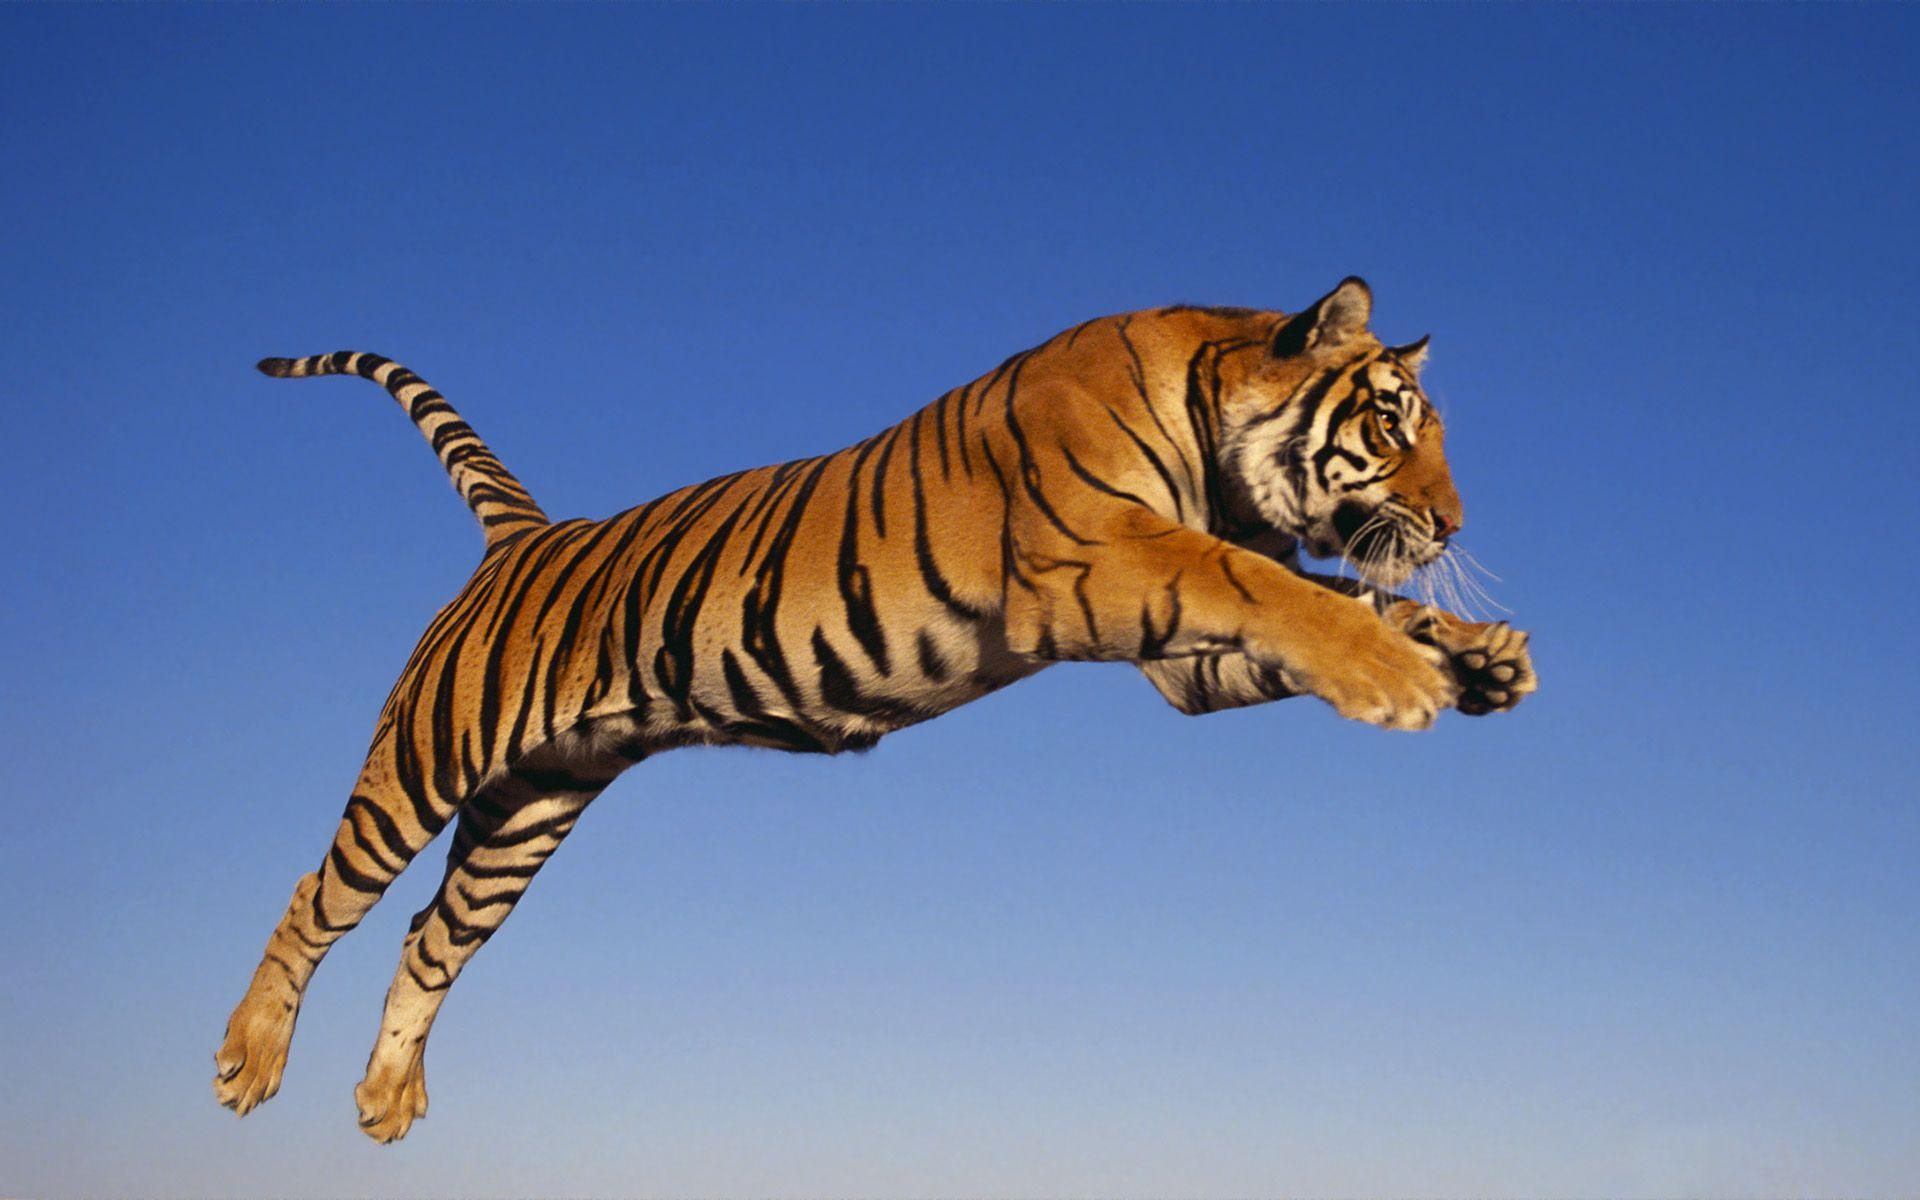 Jumping Tiger Wallpapers HD Wallpapers